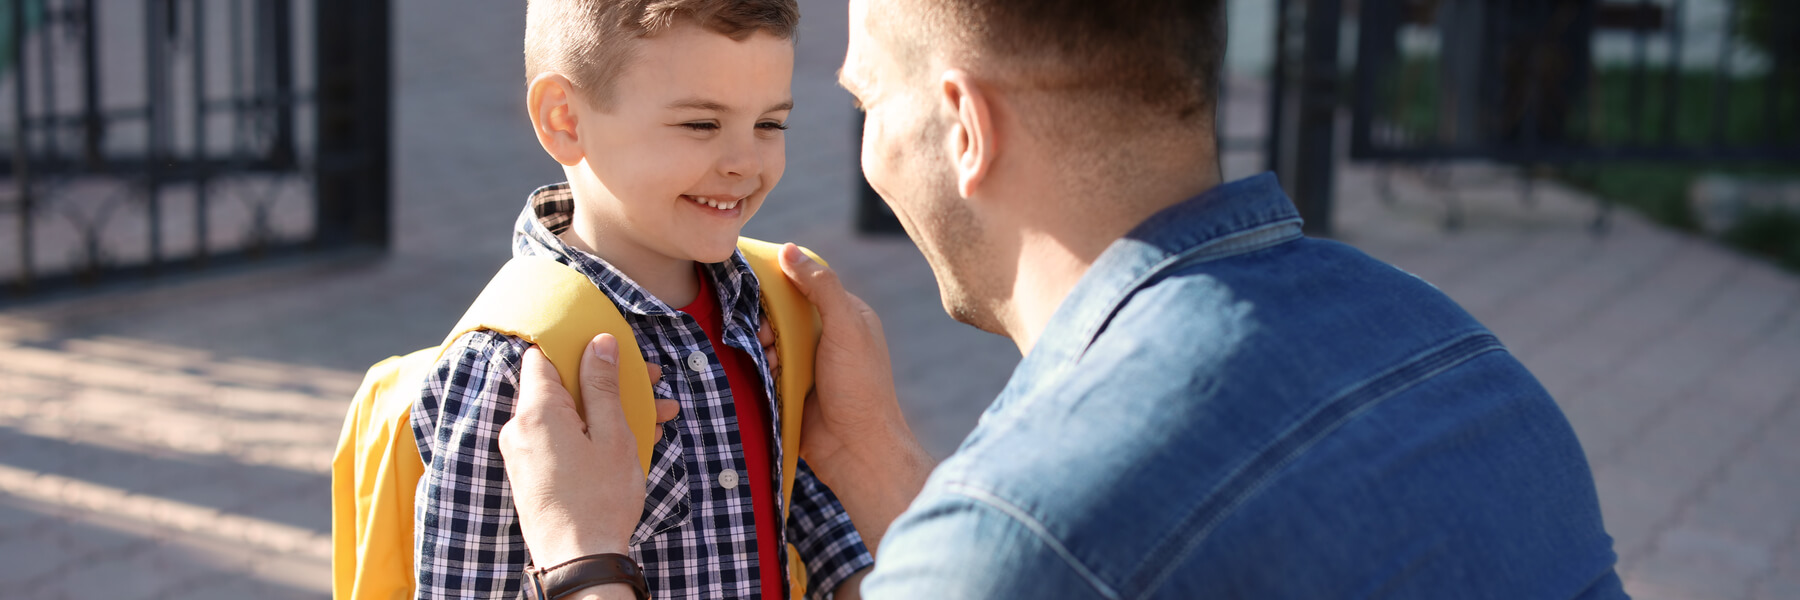 adult man helping young son or child put on school backpack properly, backpack safety concept